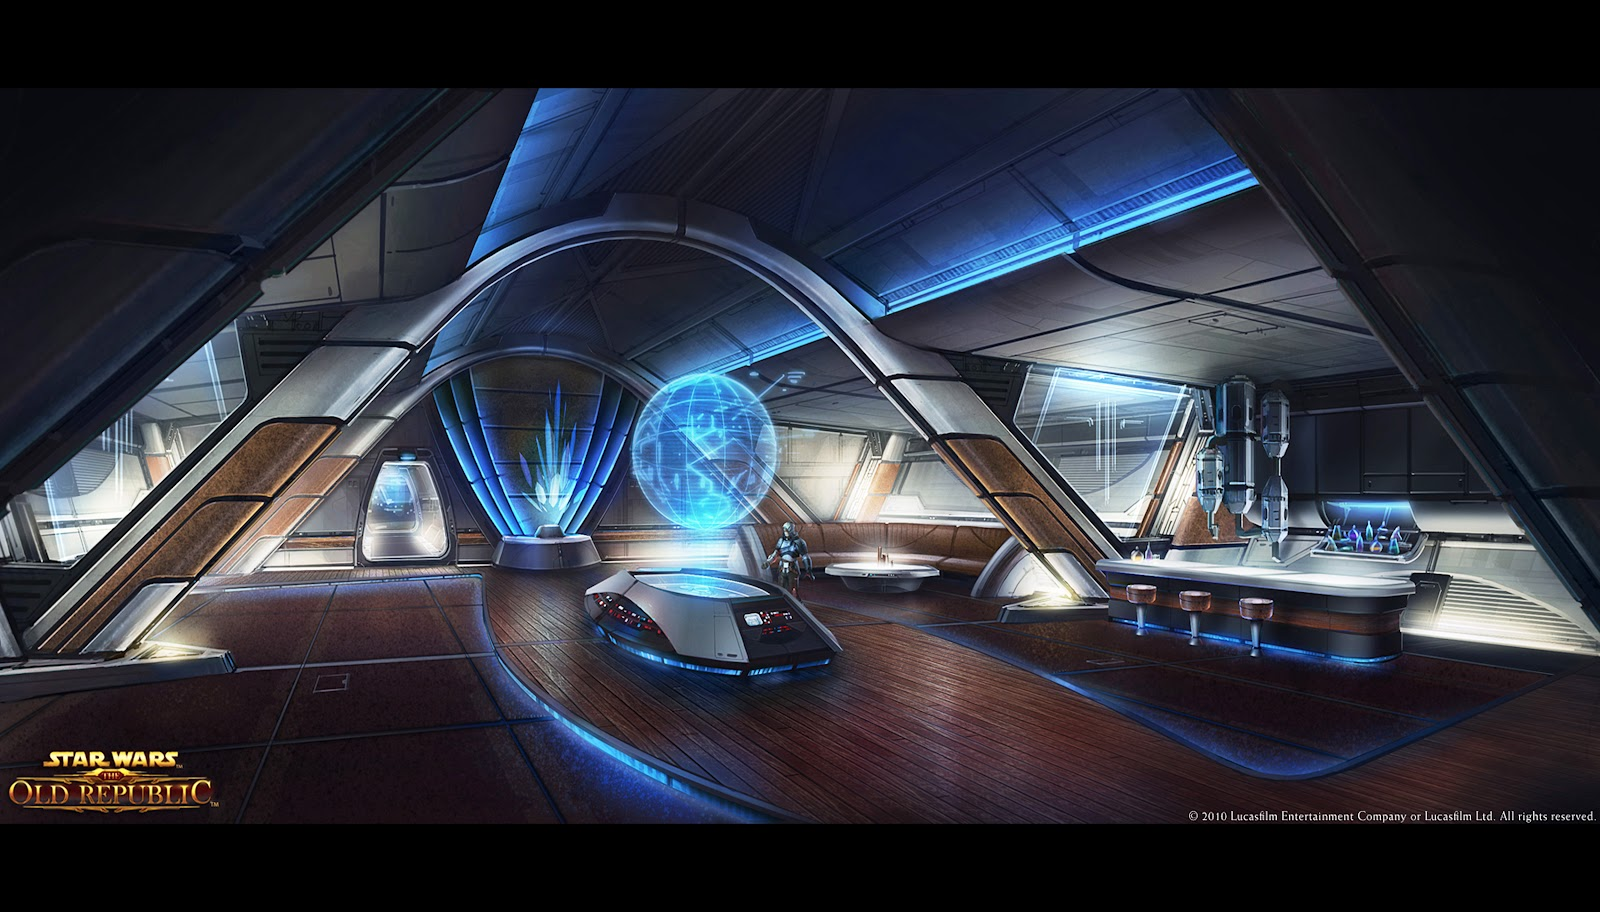 dsng 39 s sci fi megaverse dropships spaceships steampunk cruisers part 3. Black Bedroom Furniture Sets. Home Design Ideas